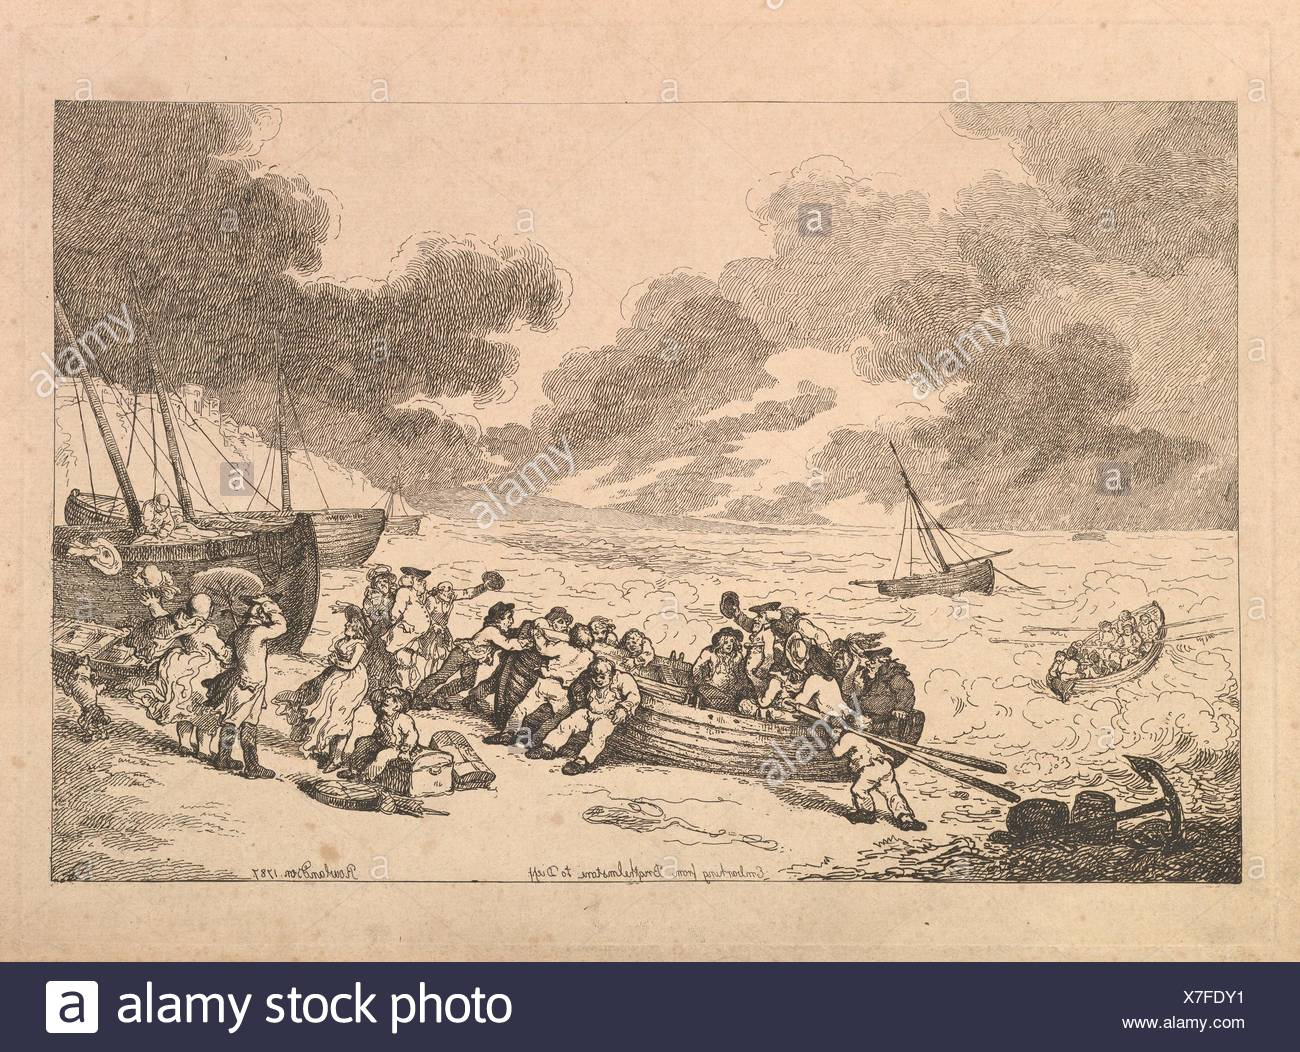 Embarking from Brighthelmstone to Dieppe. Series/Portfolio: Imitations of Modern Drawings; Artist: Thomas Rowlandson (British, London 1757-1827 - Stock Image